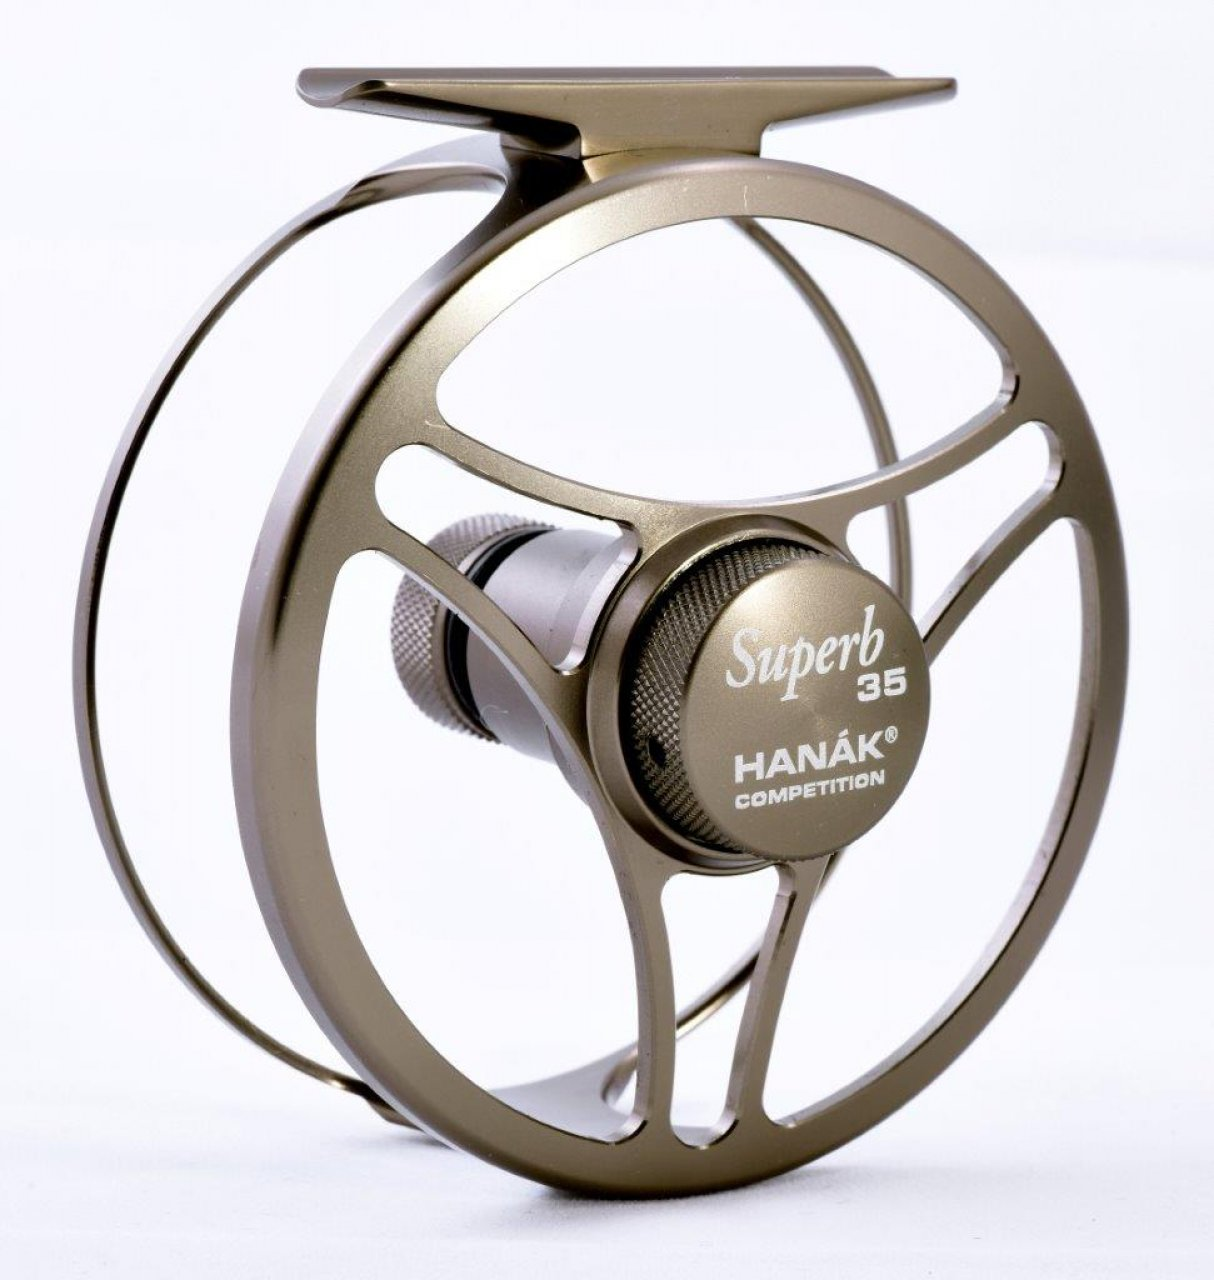 Superb II Fly Reel Body